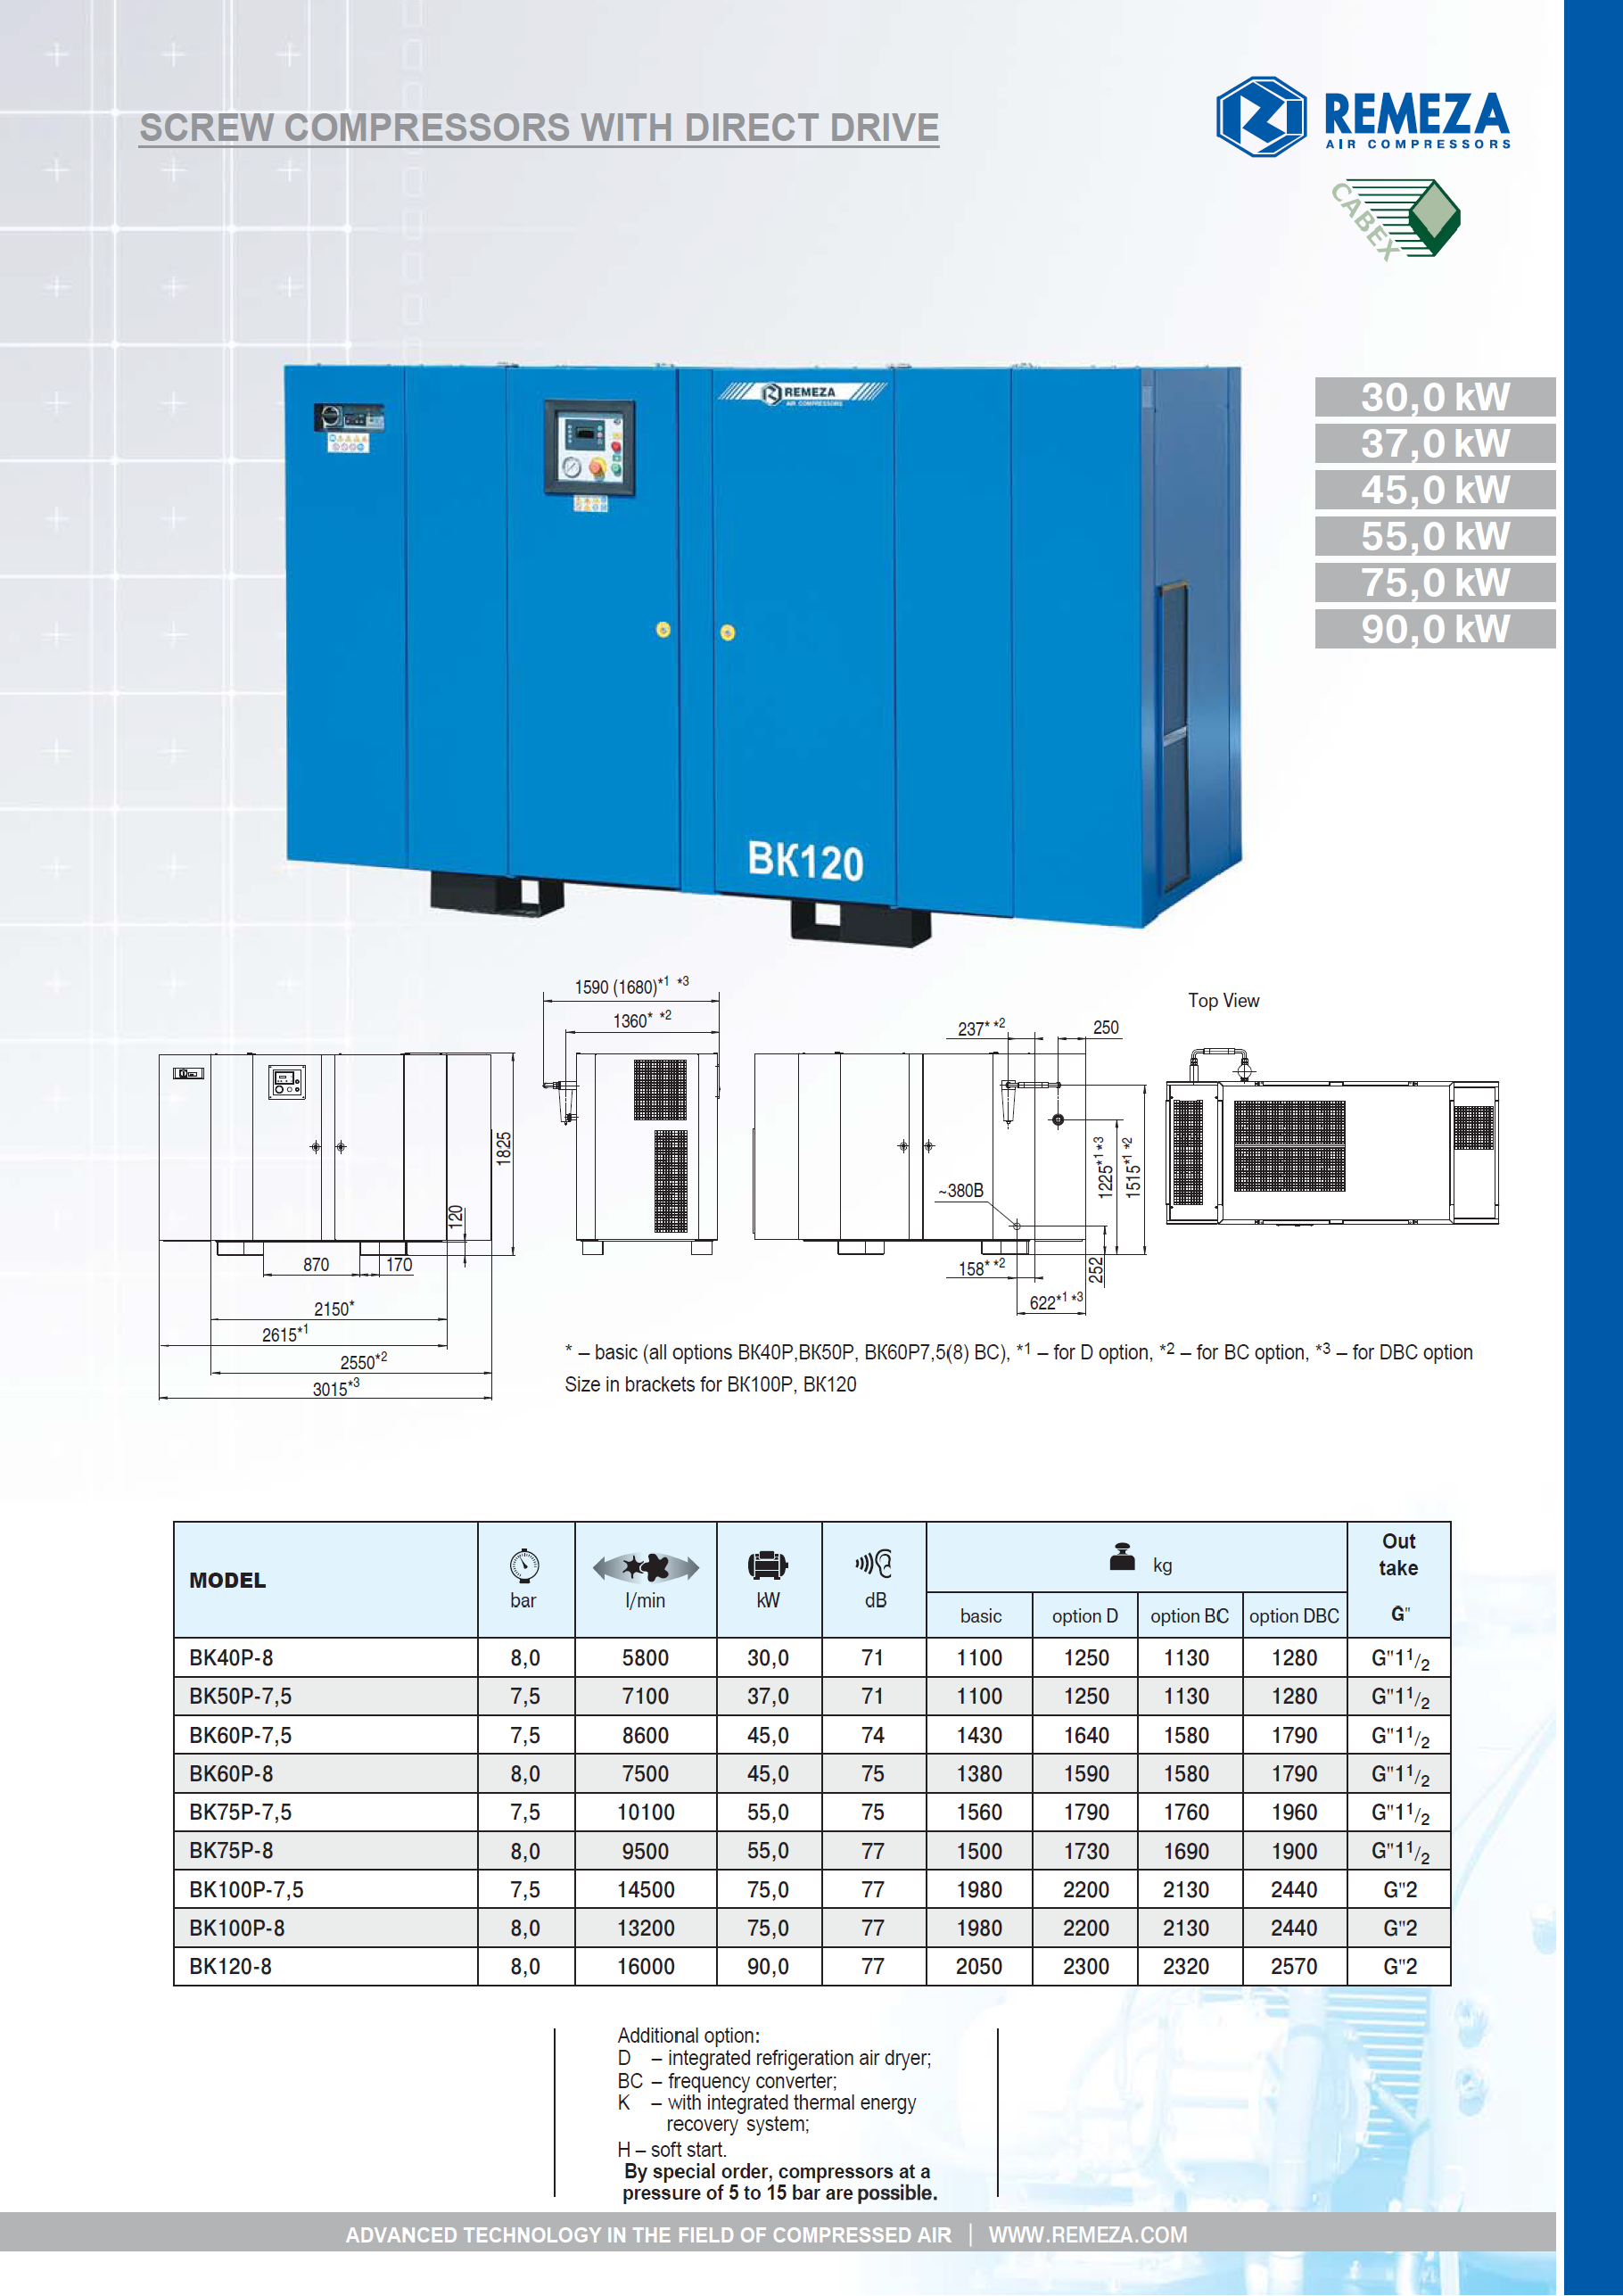 9_screw-compressors-with-direct-drive_pag_1